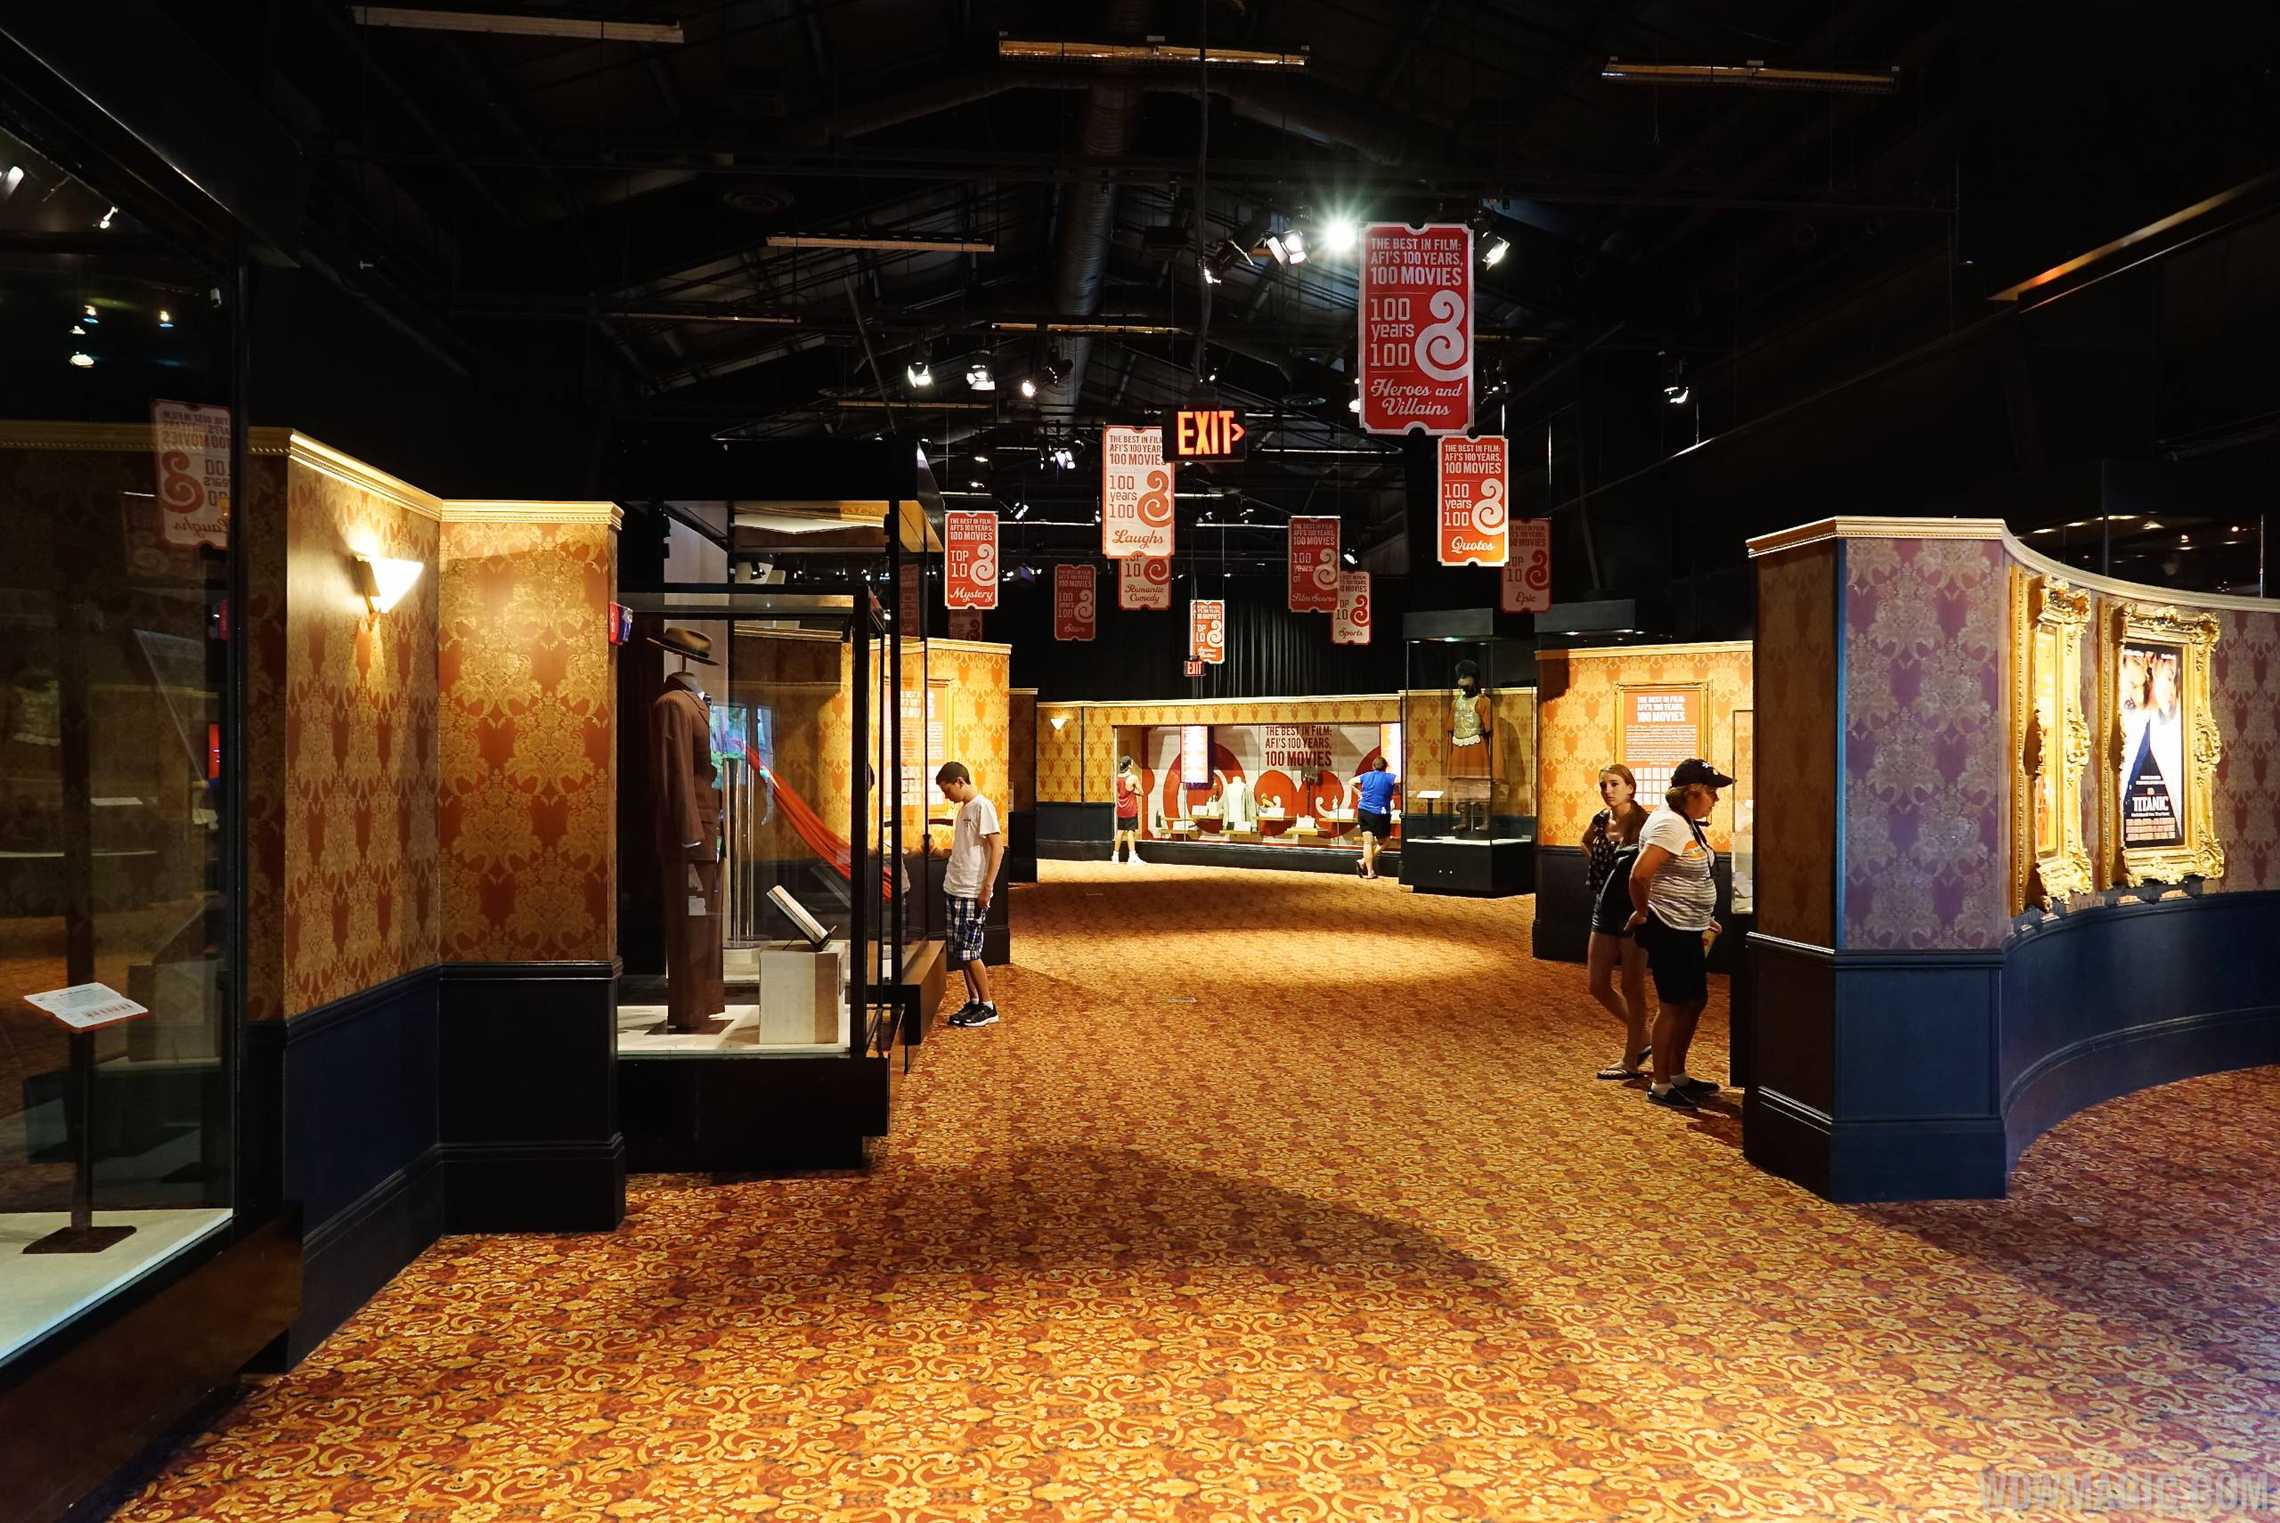 American Film Institute exhibit - View along the exhibit